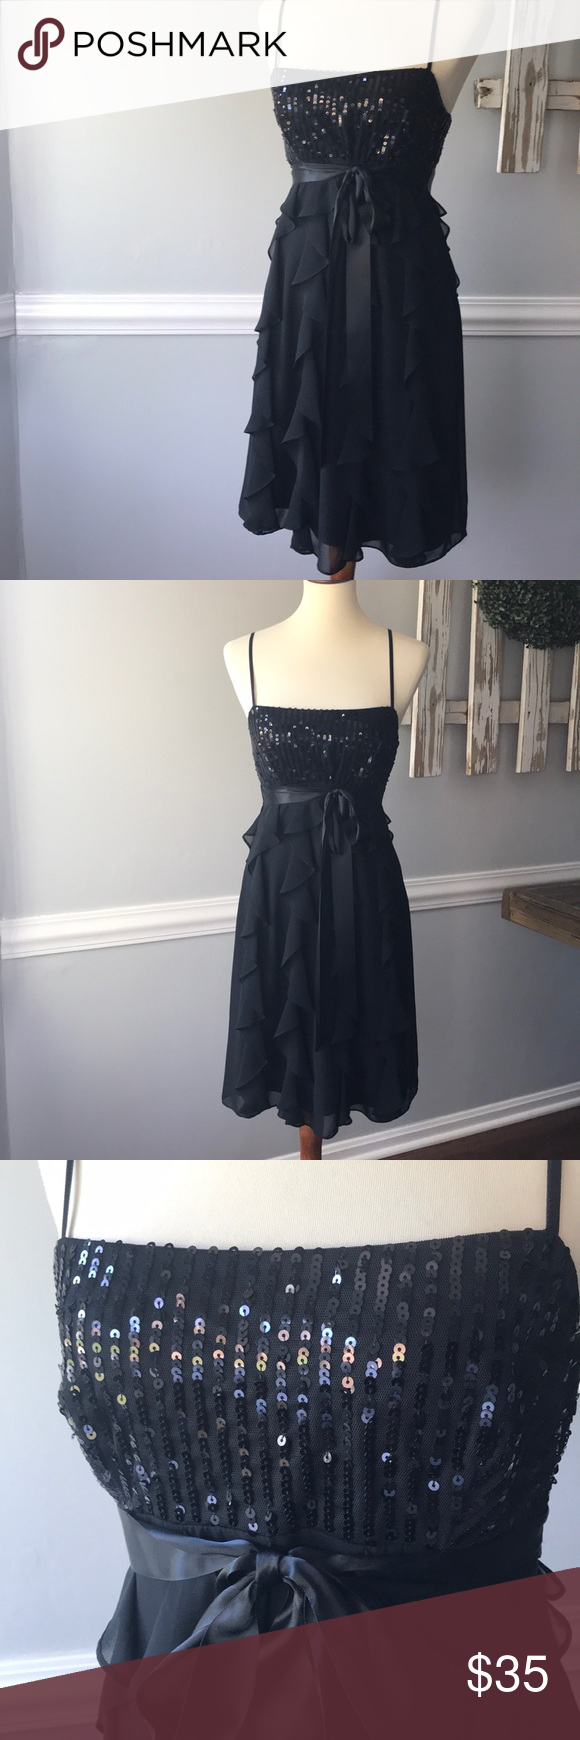 Eliza j black formal cocktail or prom dress